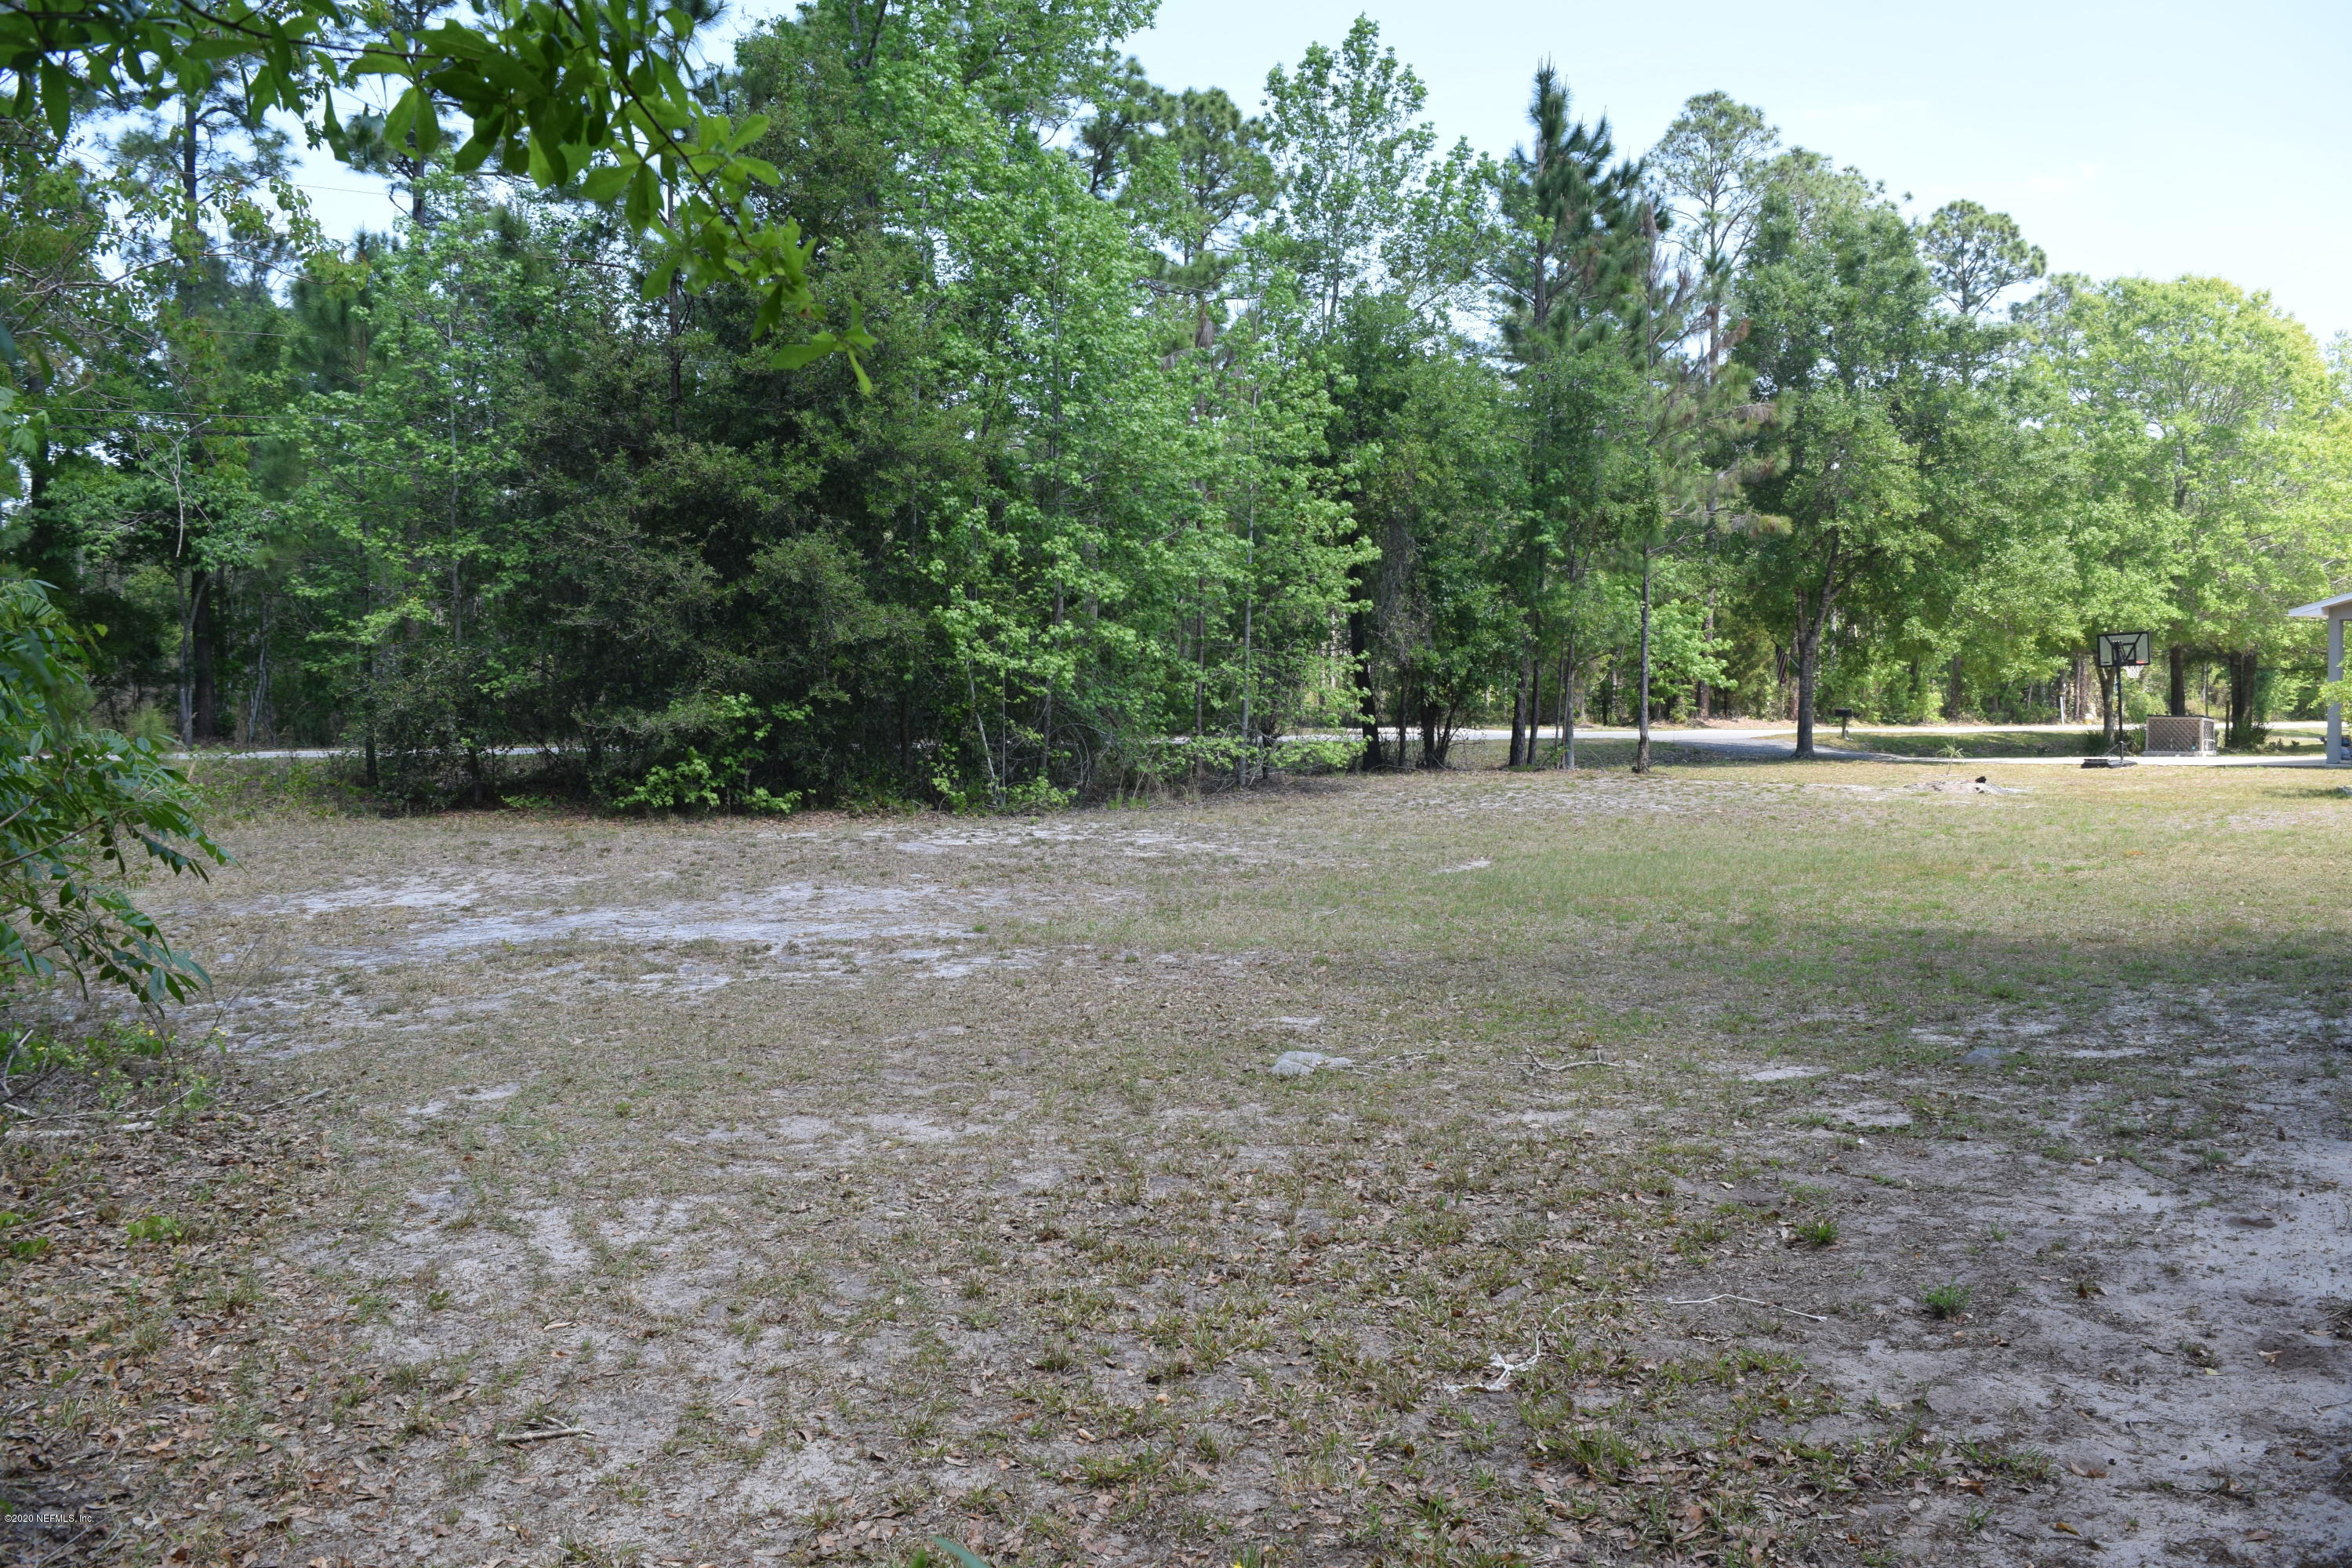 0 WOODLAWN, ST AUGUSTINE, FLORIDA 32084, ,Vacant land,For sale,WOODLAWN,1046333